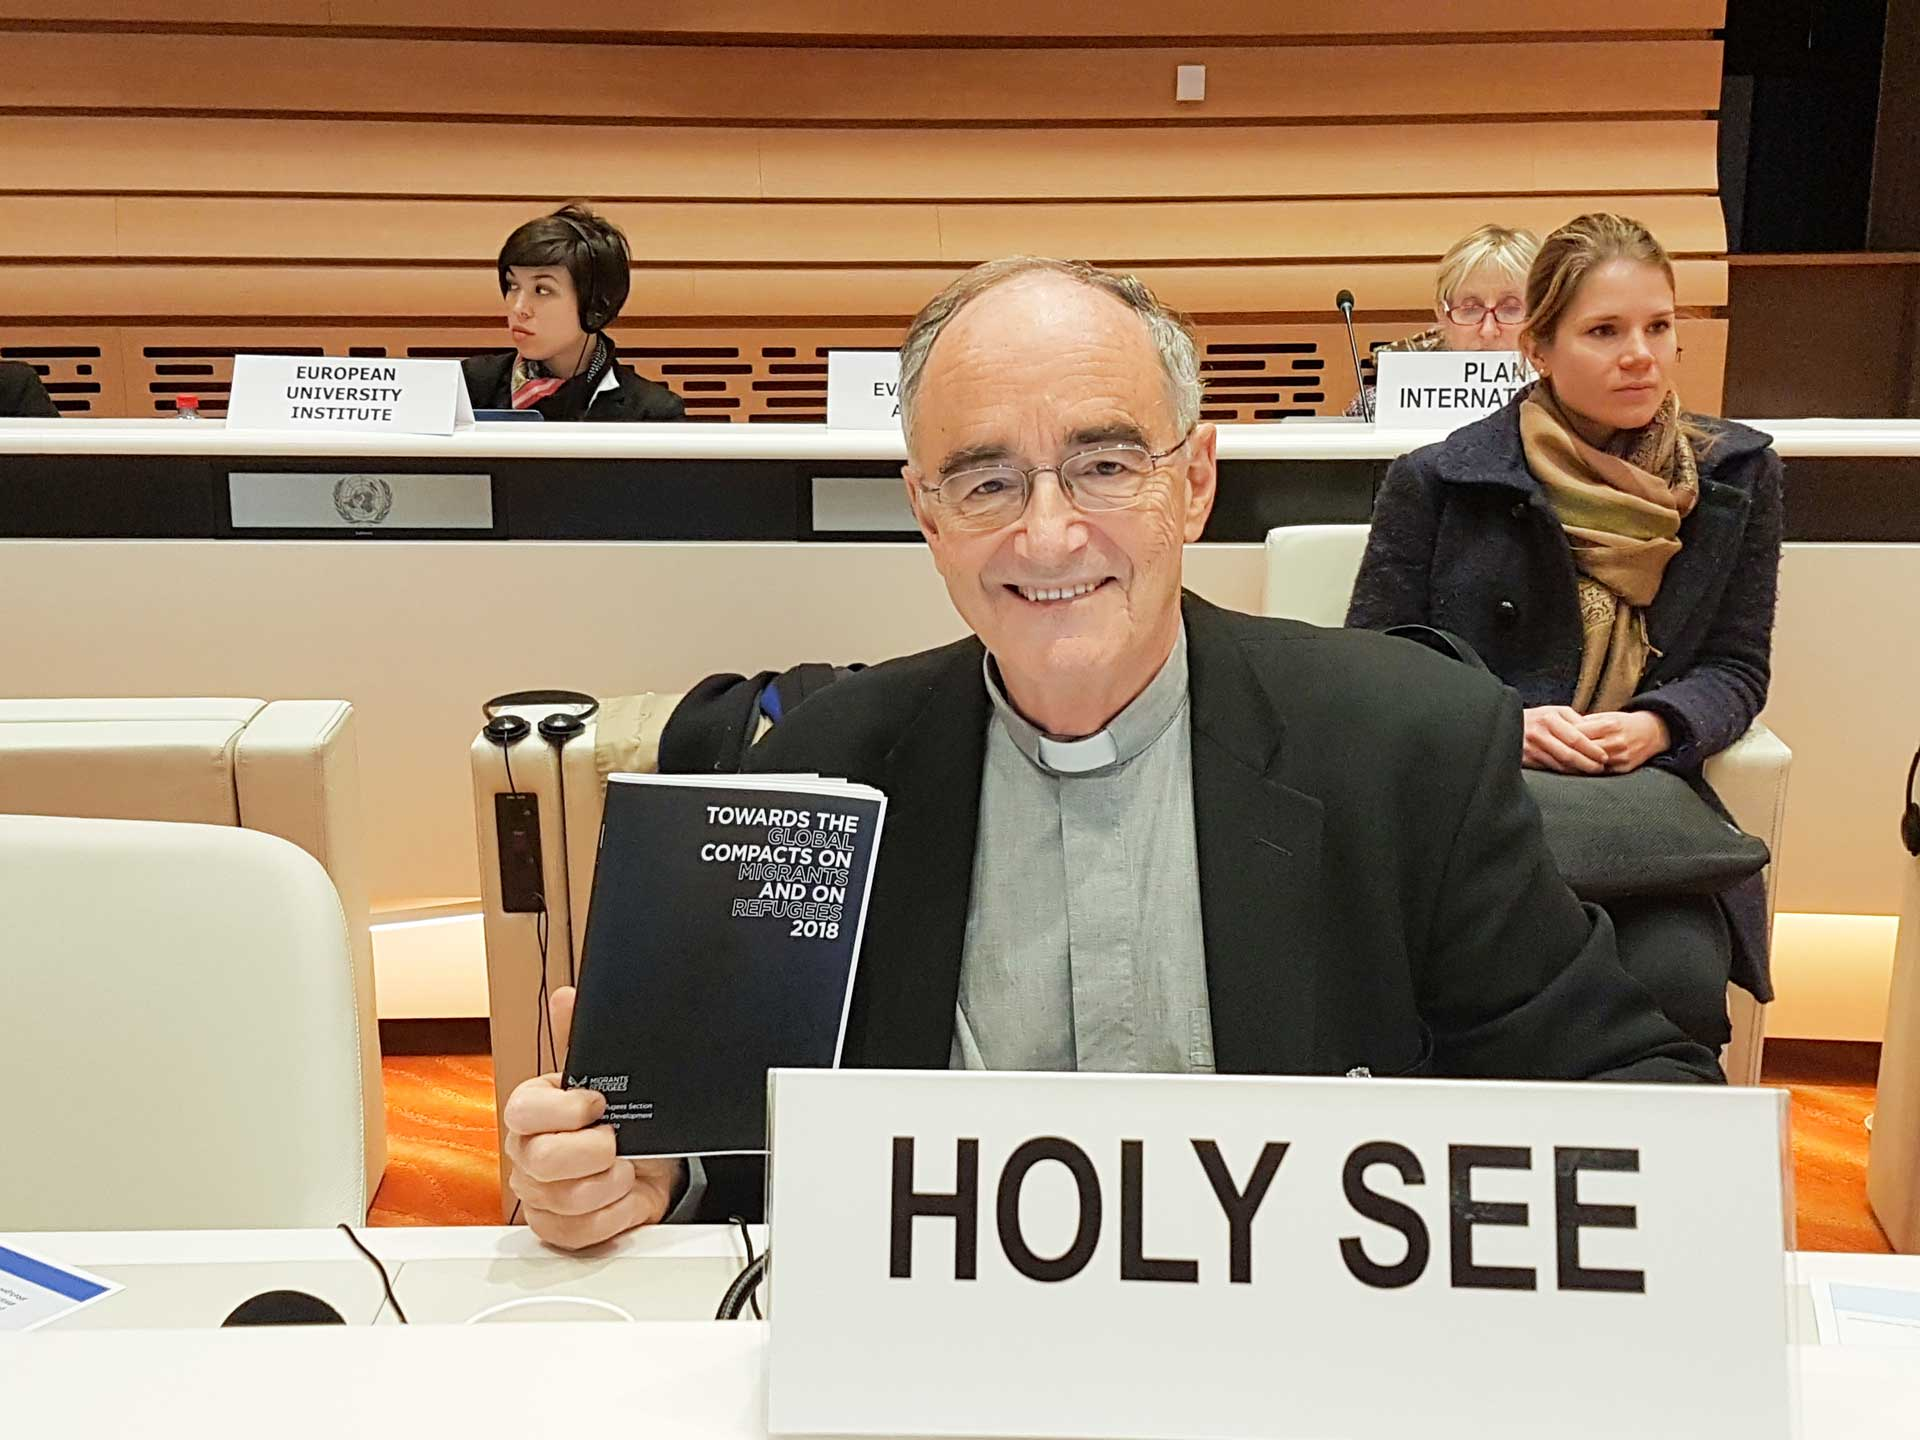 holy see global compacts czerny Migrants and Refugees